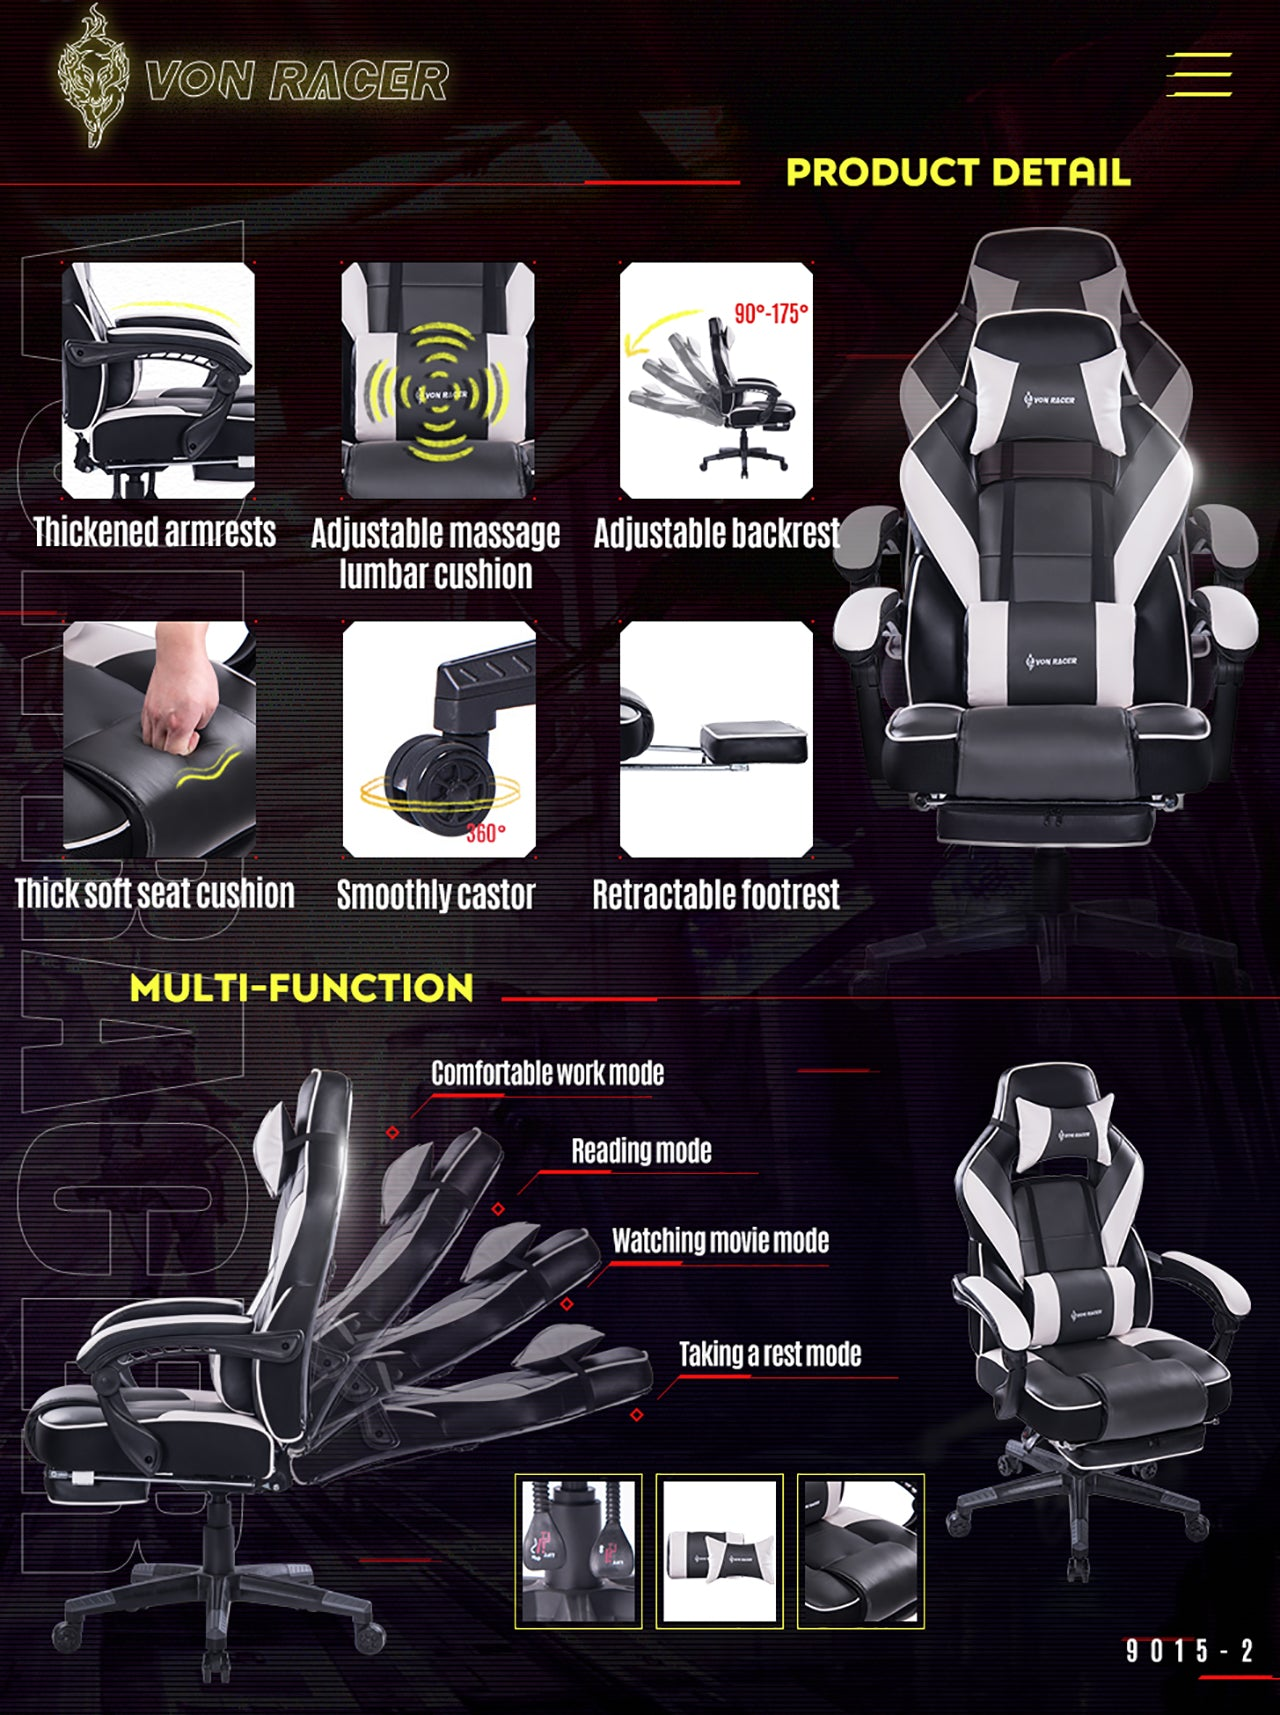 VON RACER 9015 GRAY RECLINING MASSAGE GAMING CHAIR WITH FOOTREST FEATURES